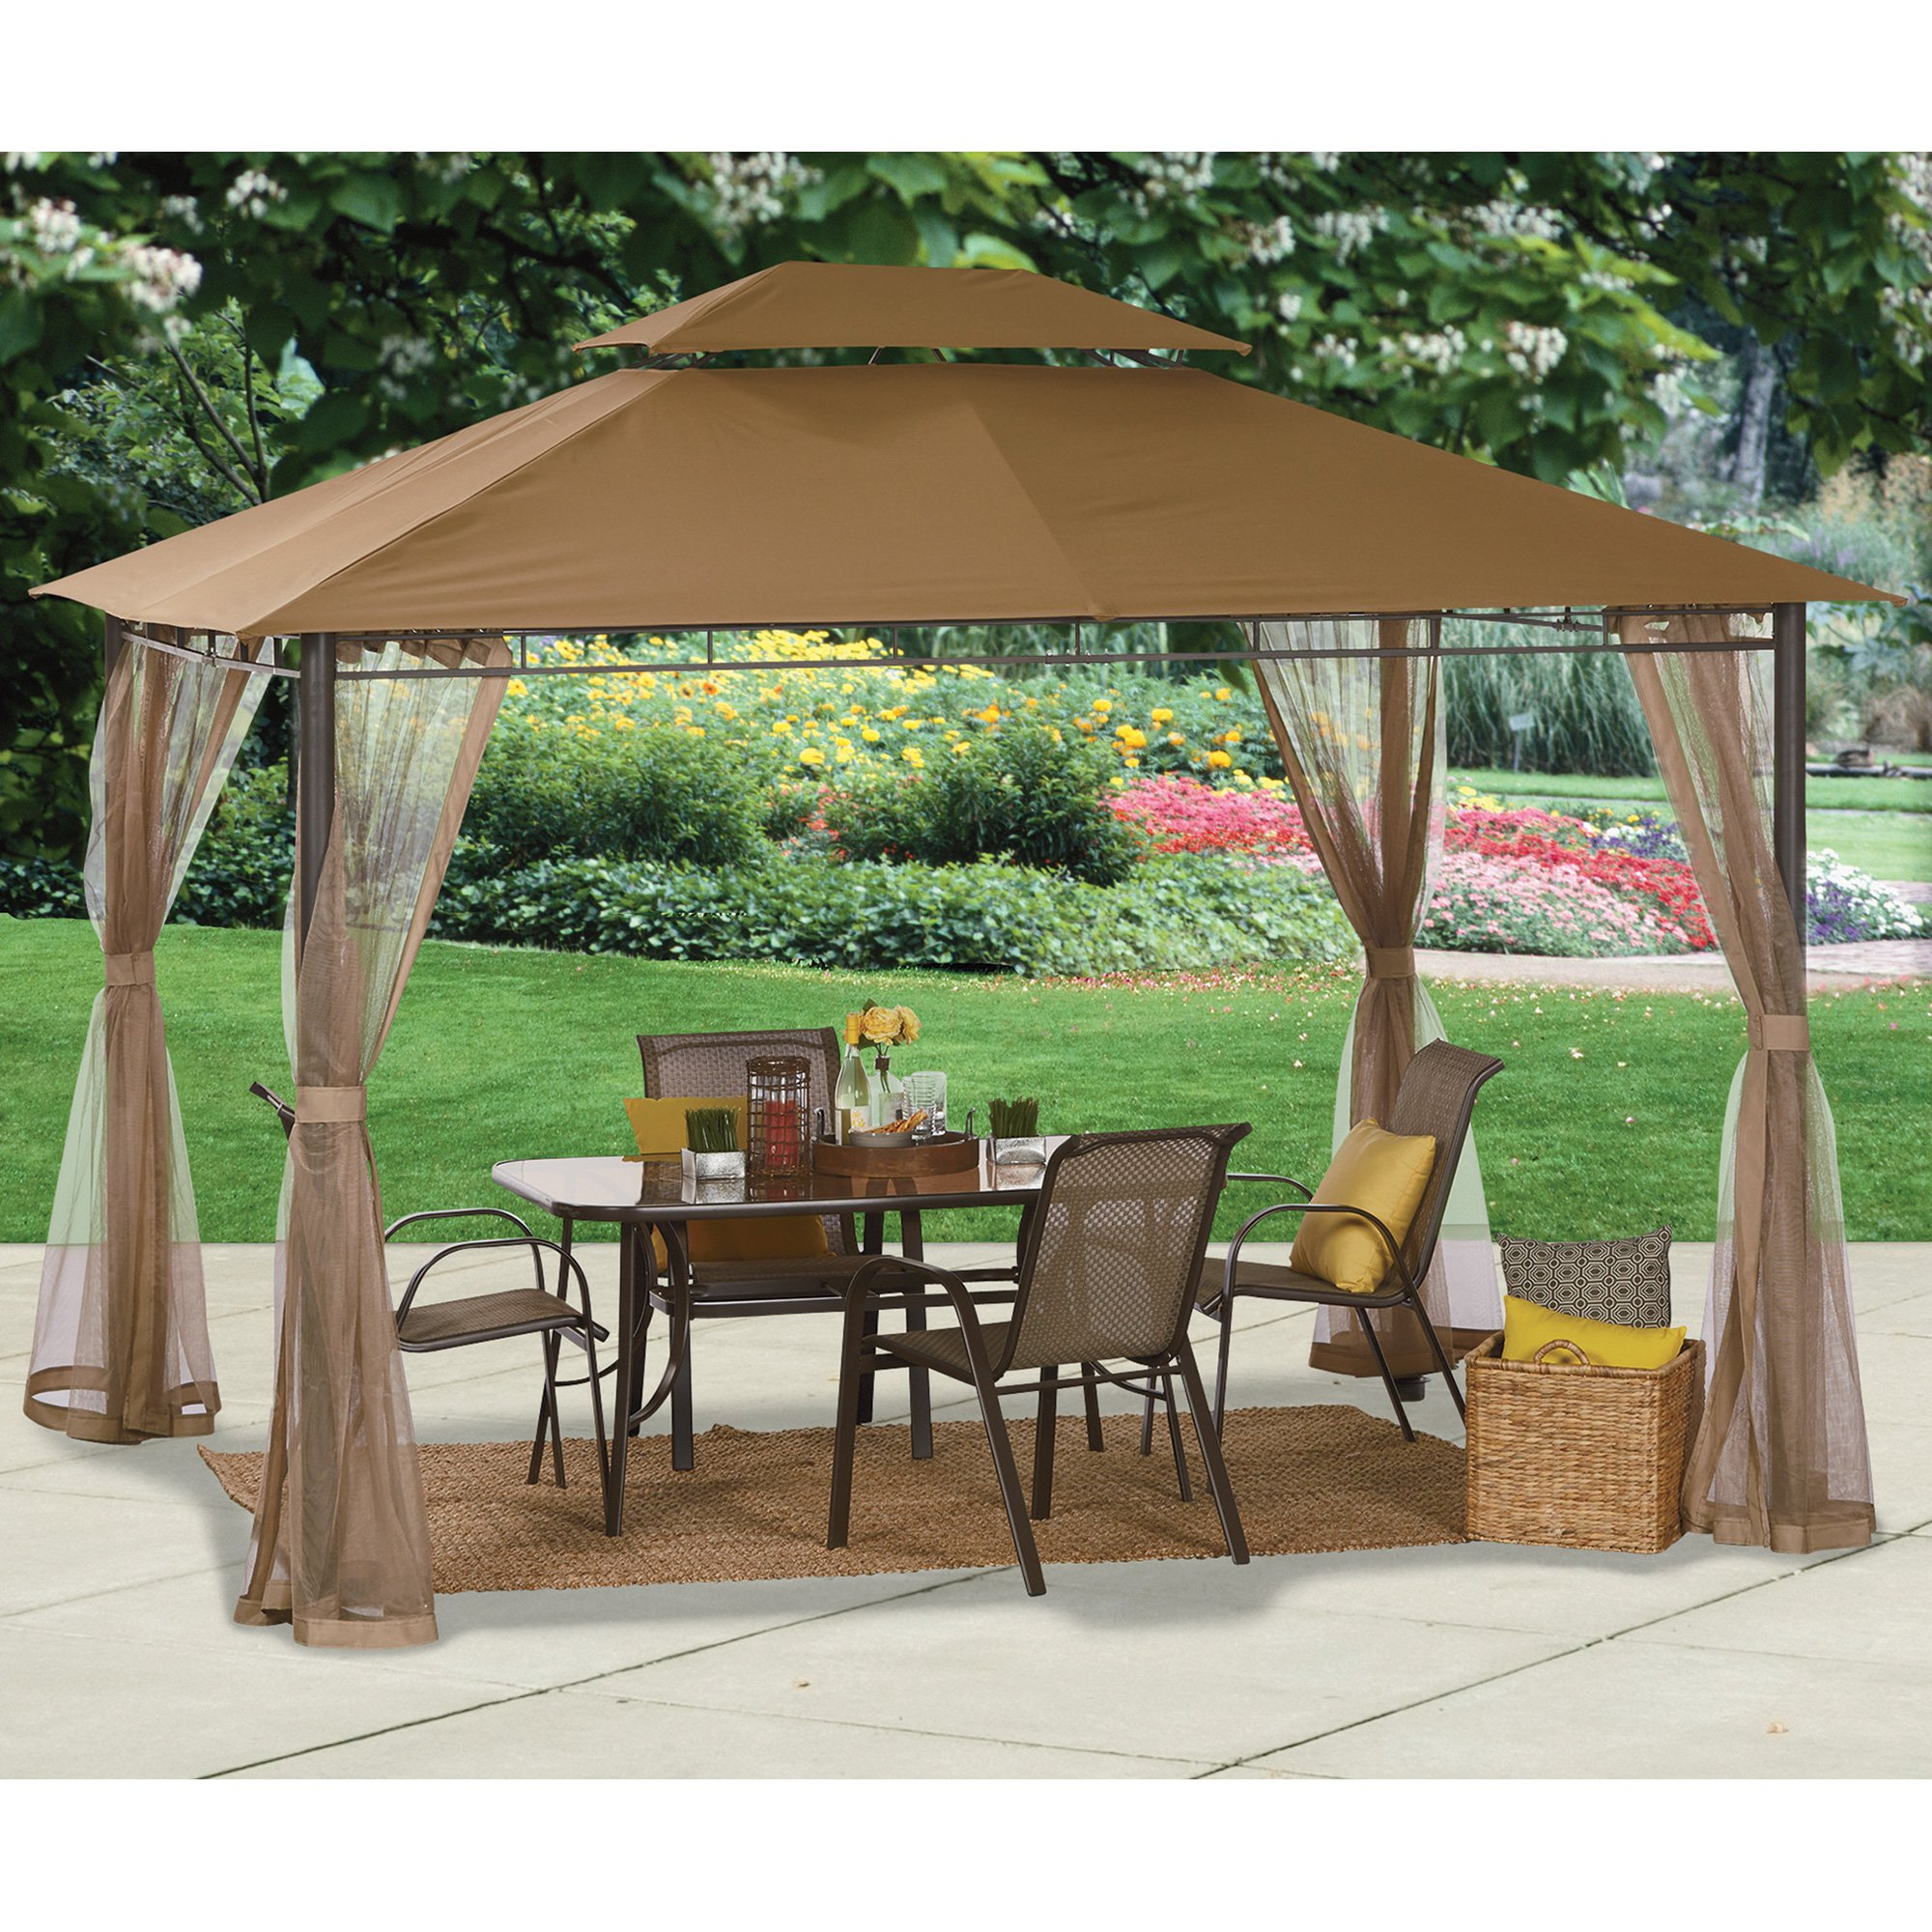 deluxe patio gazebo tent - 10ft. x 12ft. HDPHIKK